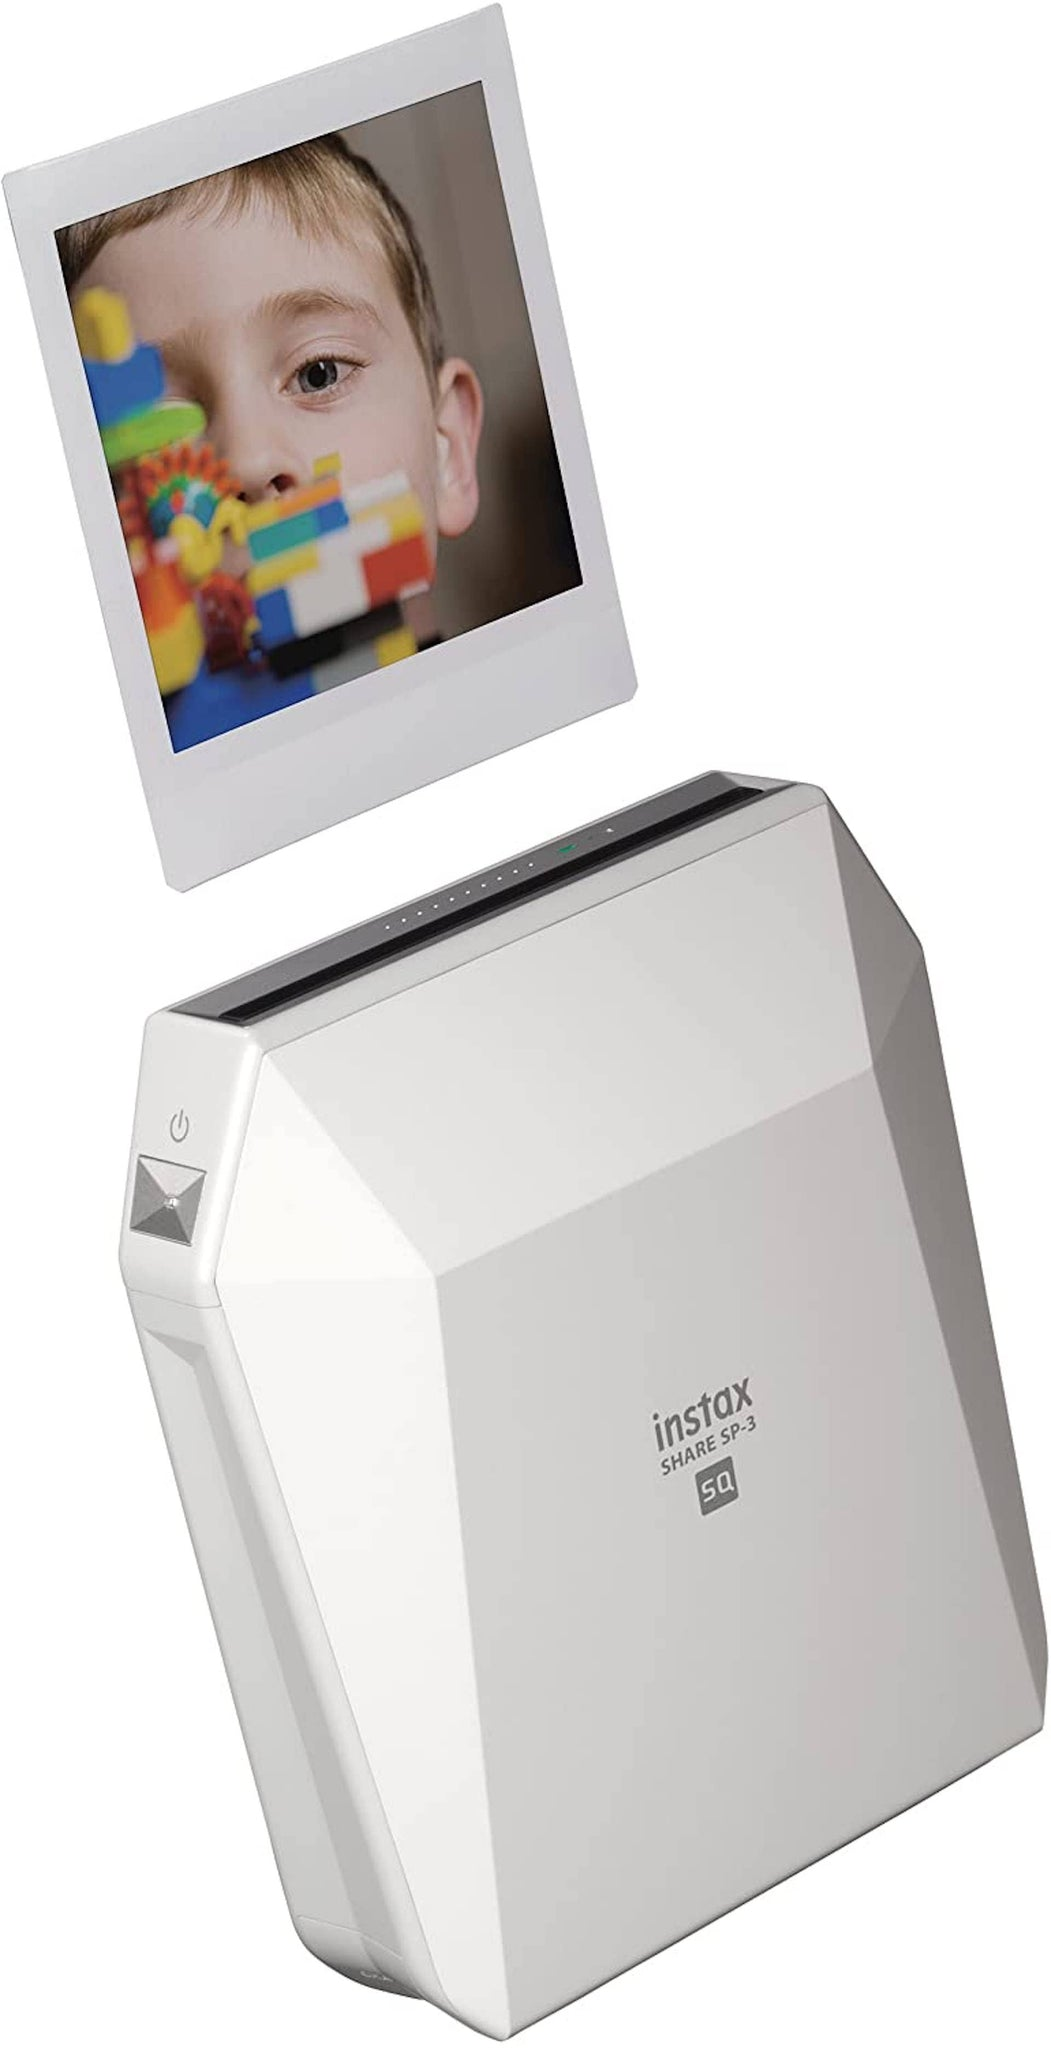 Best Photo Gifts for Photographers - Ideas Photographer Lovers - Instax Printer